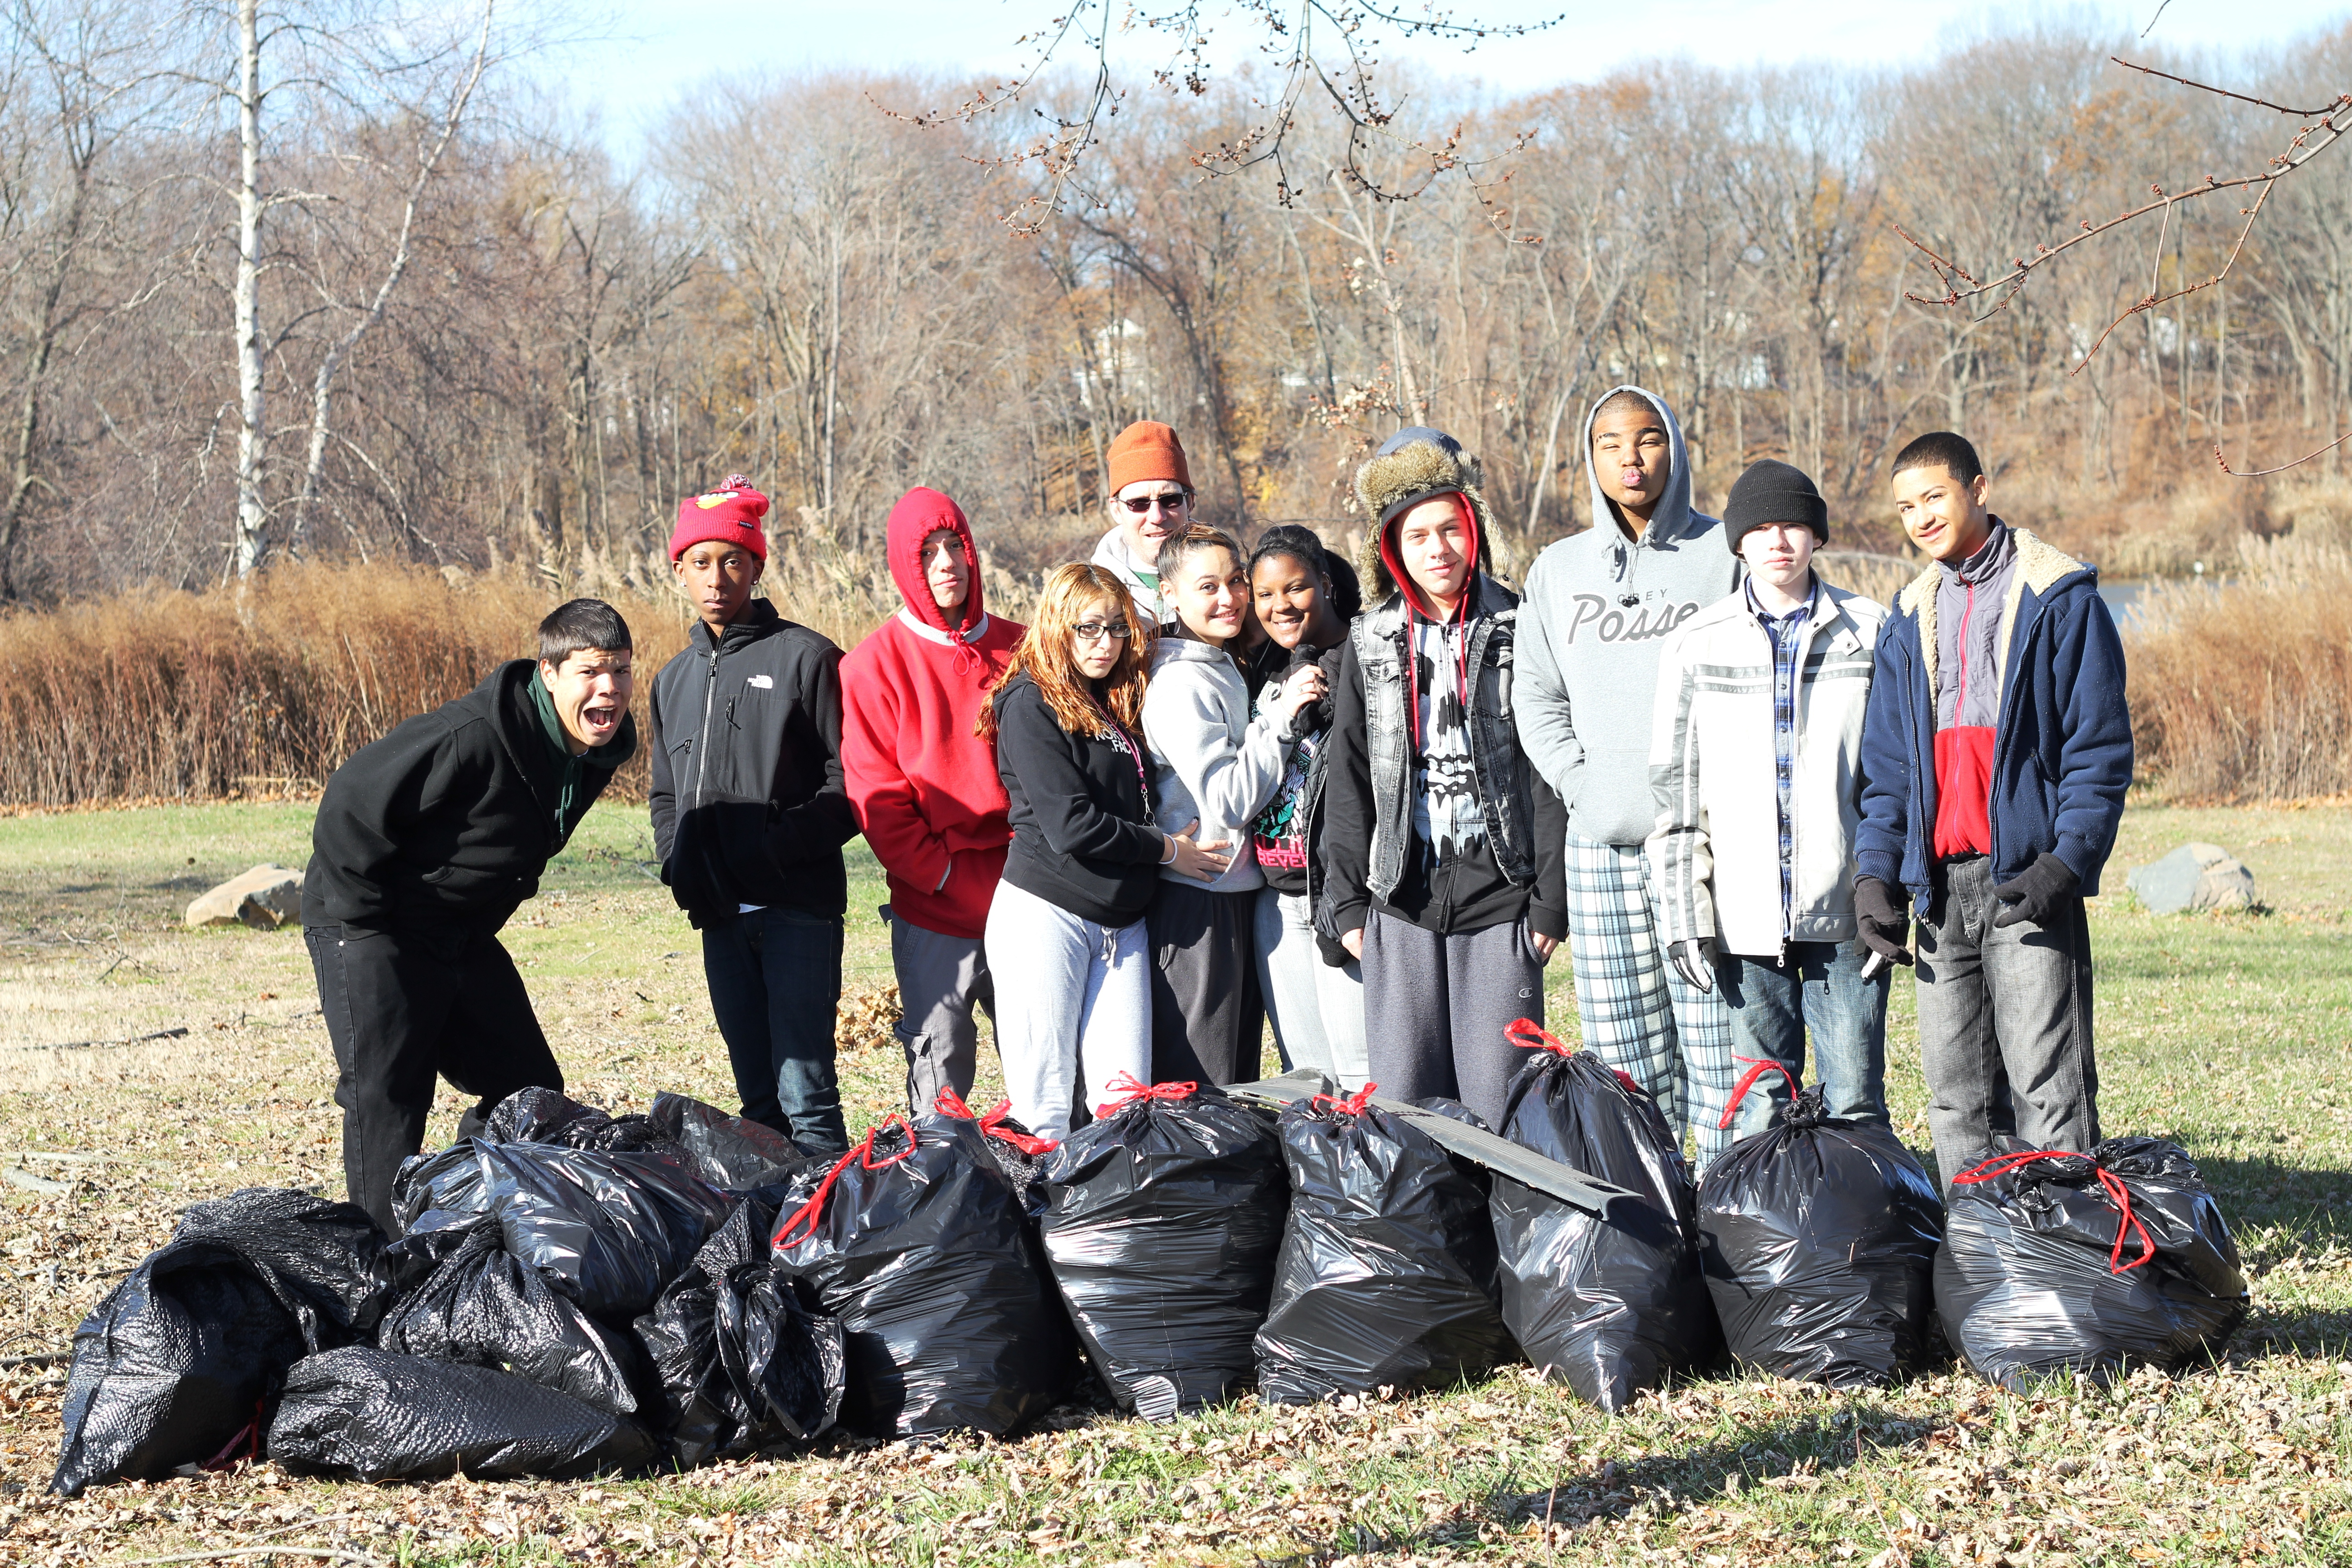 The group of Common Ground volunteers at the cleanup